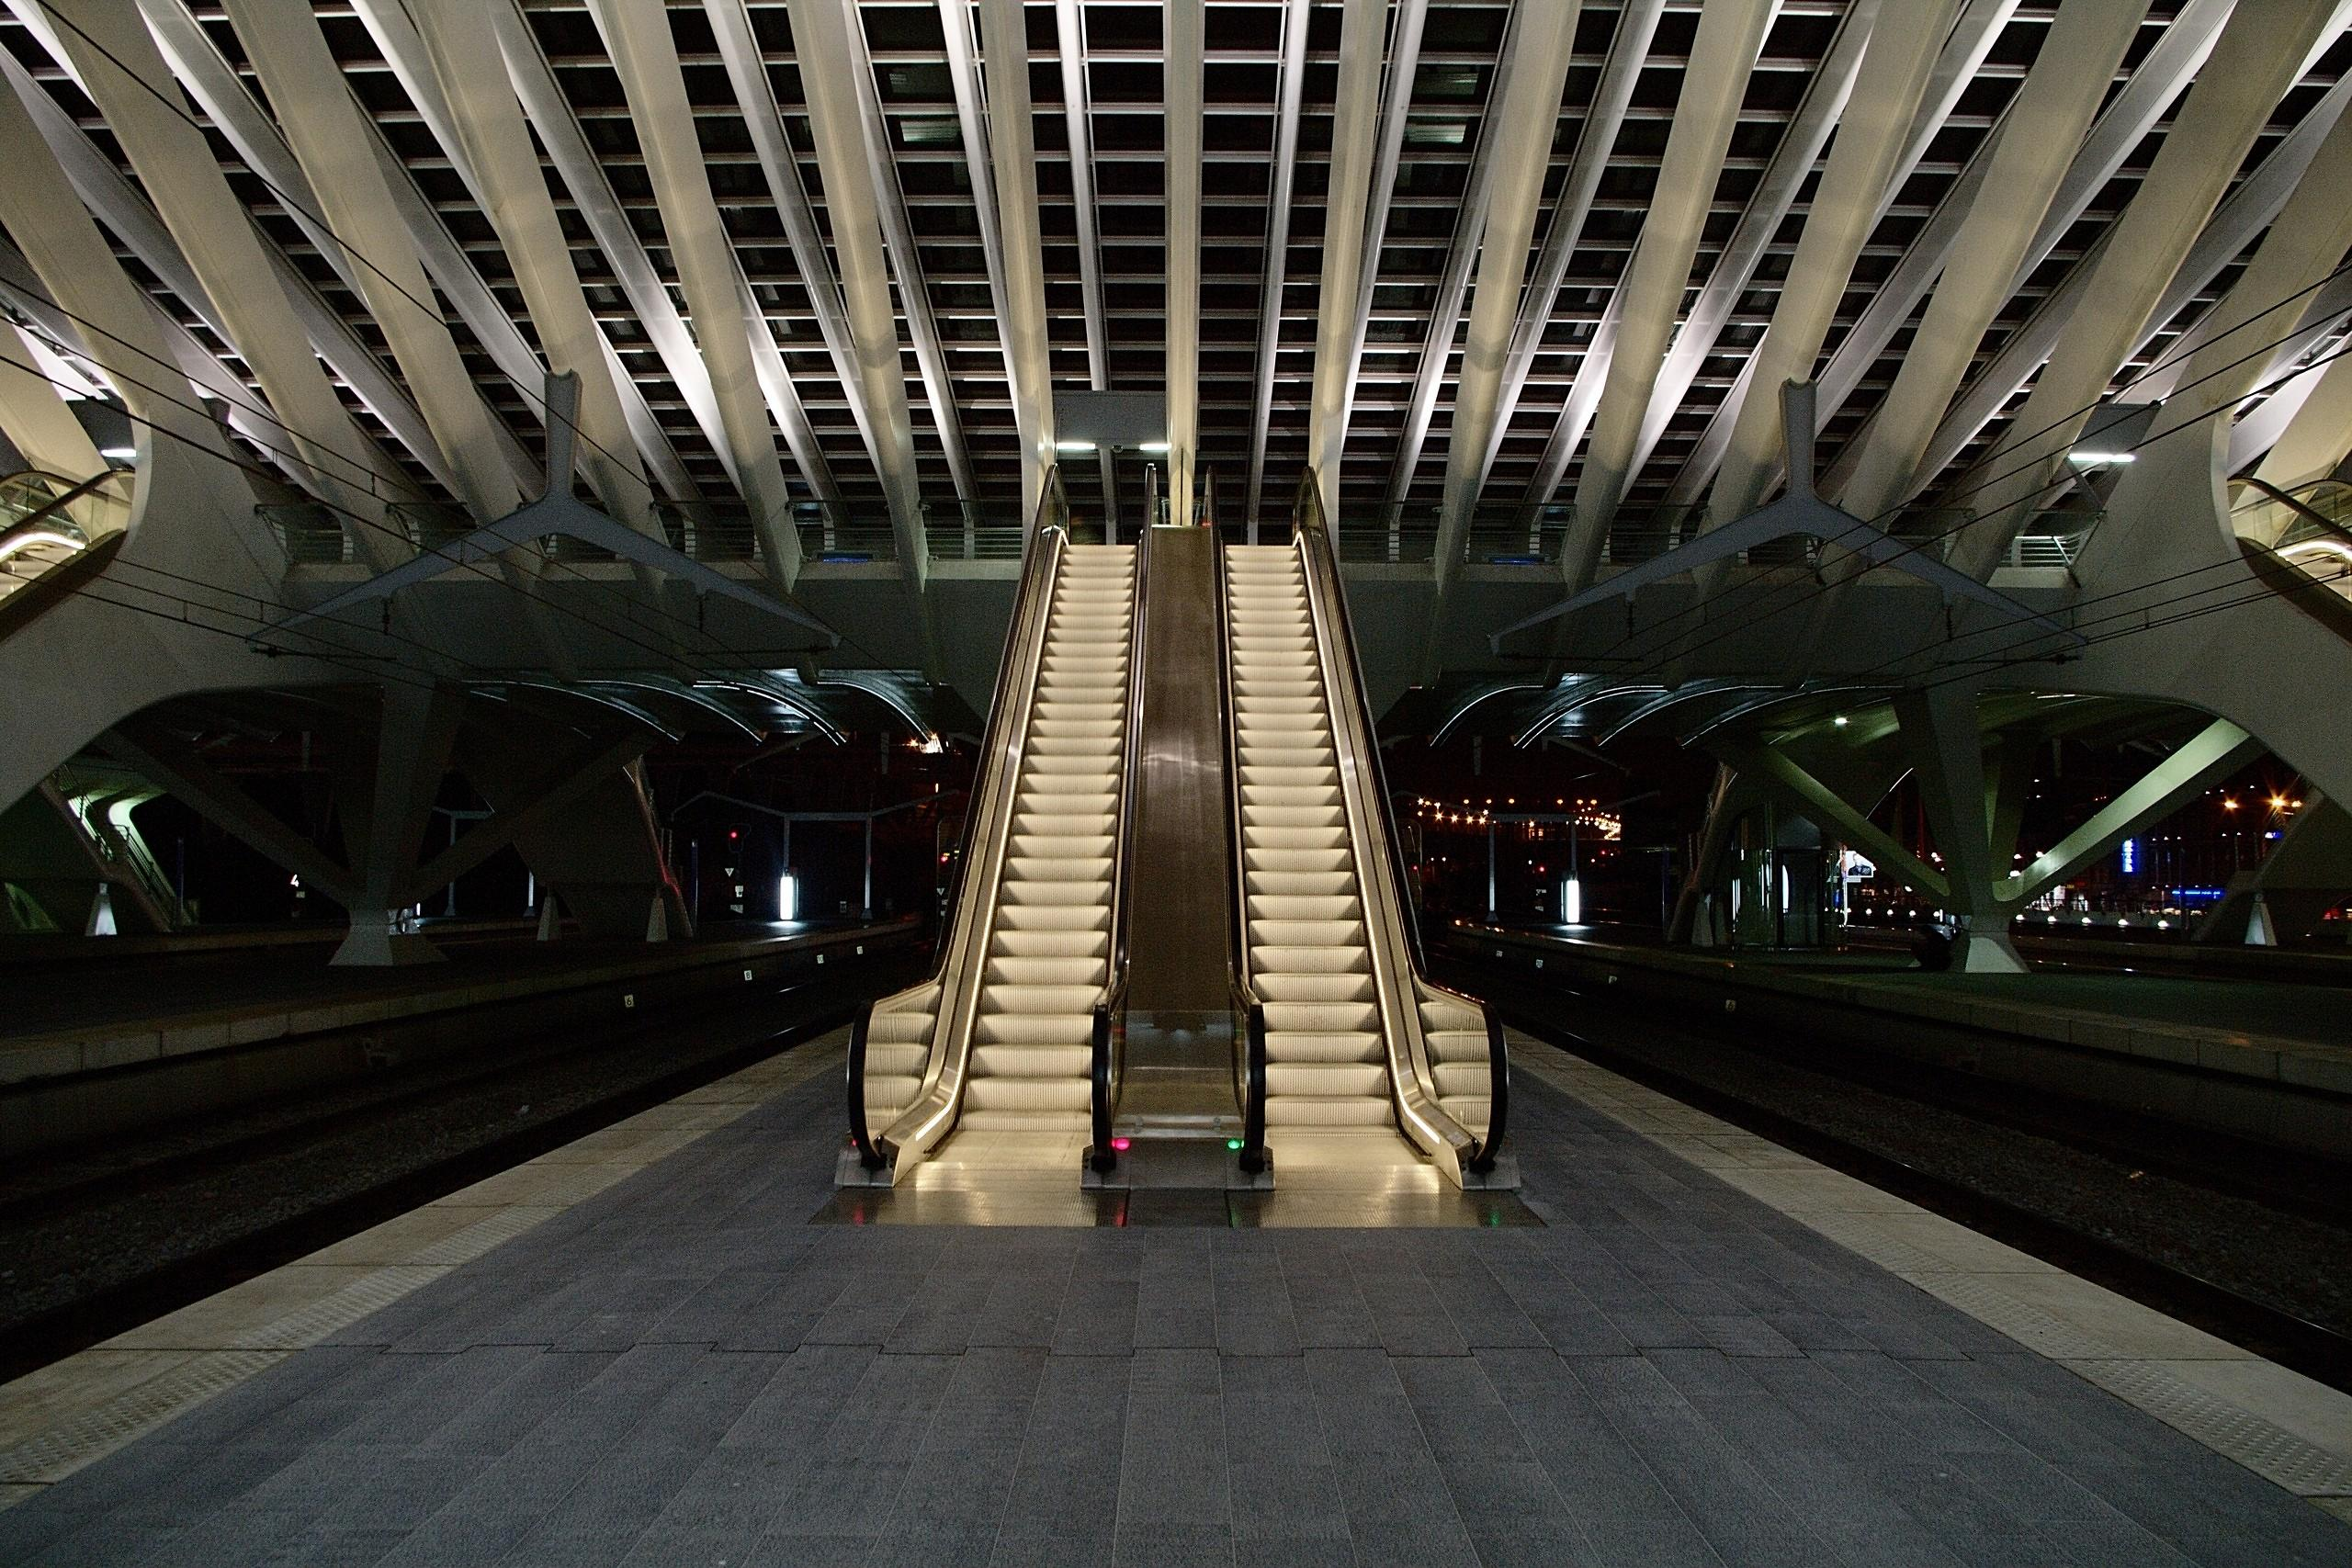 Pair of Escalators